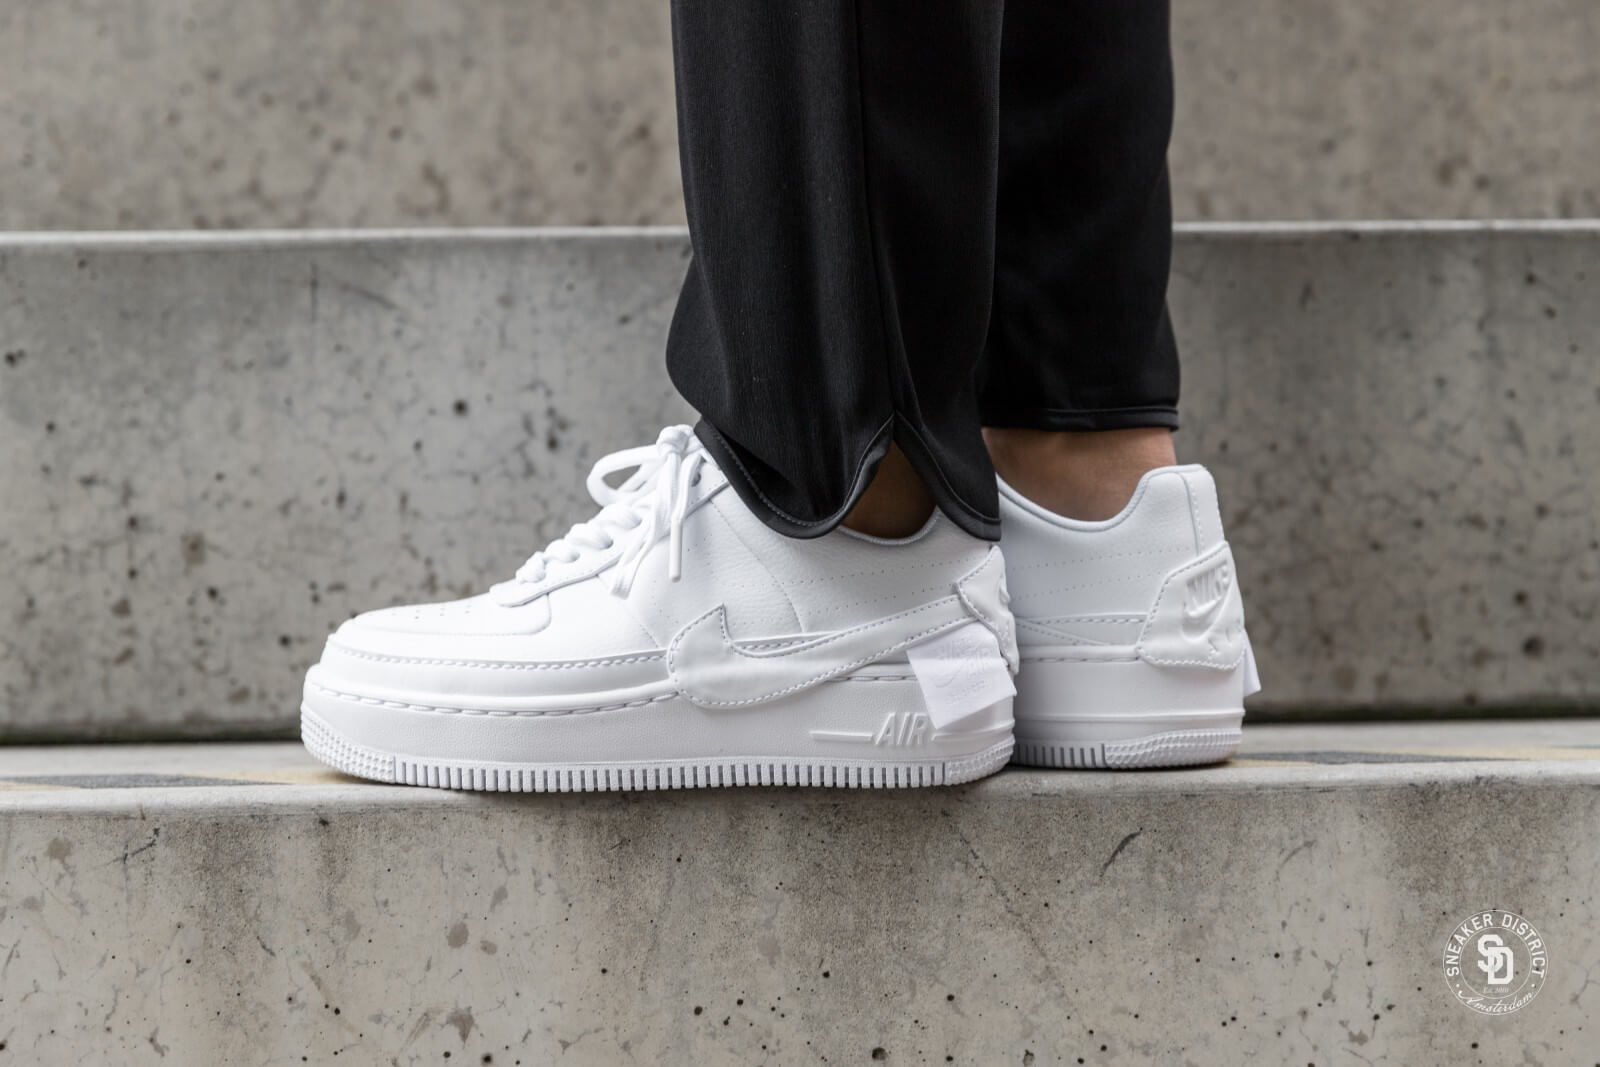 Nike Air Force 1 Jester XX WhiteWhite AO1220 101